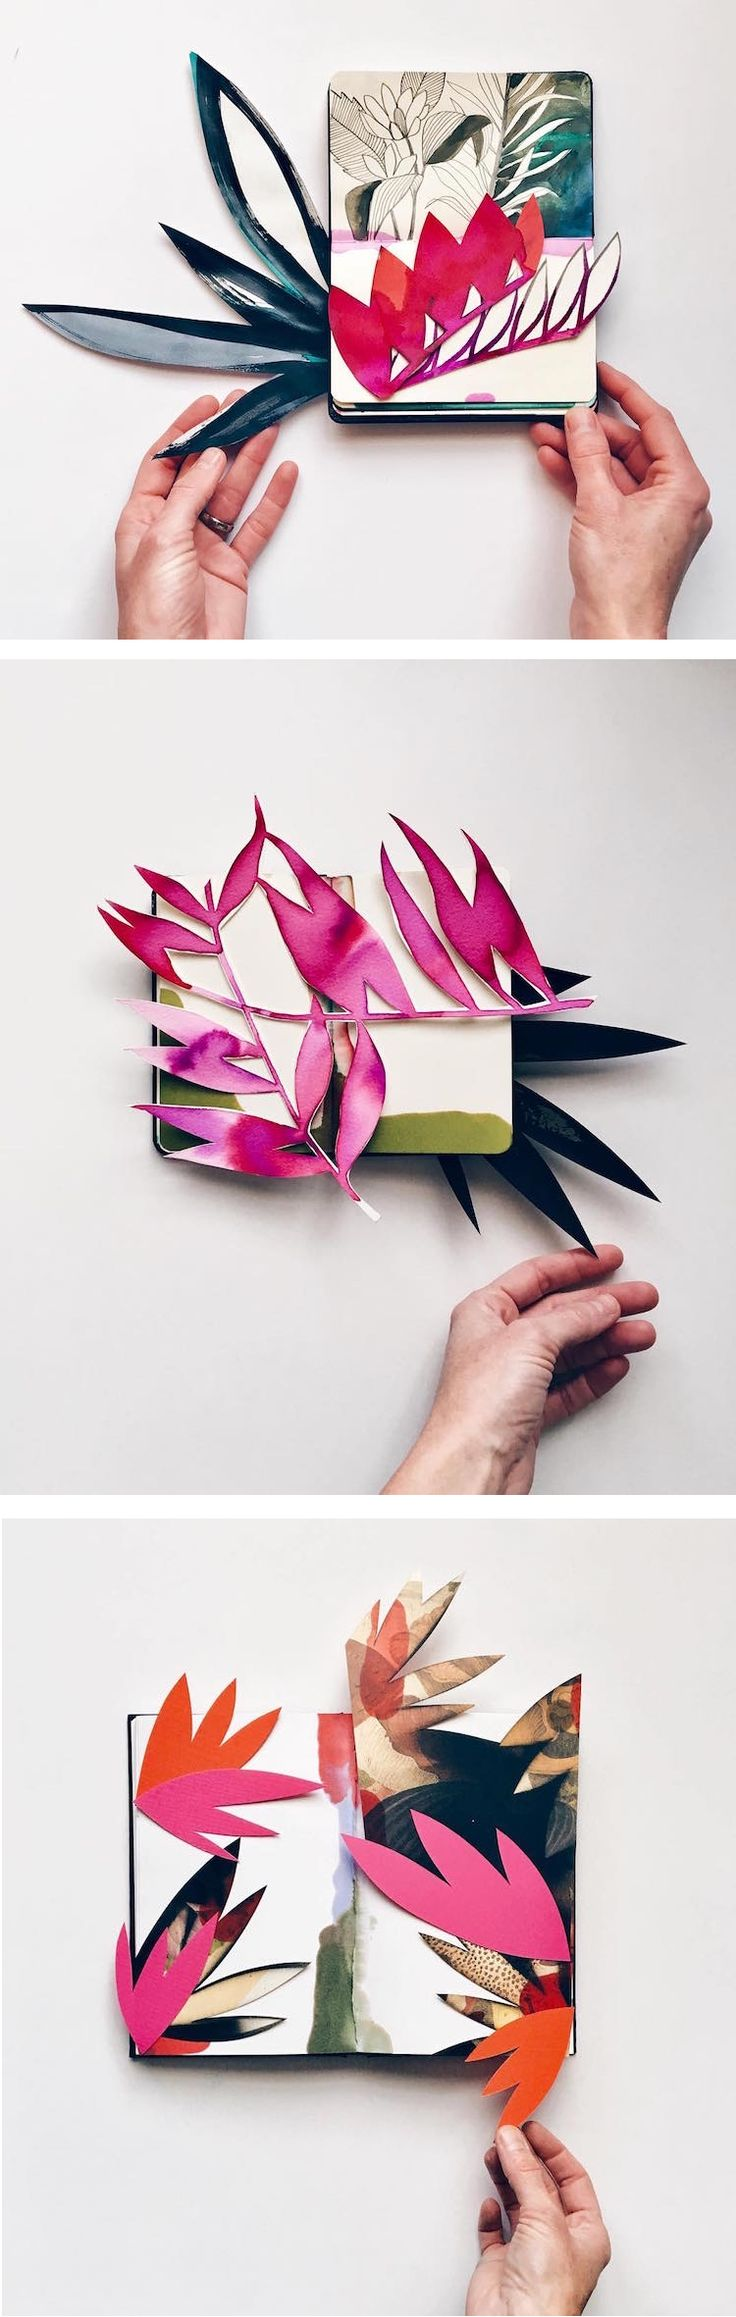 Sneak a peek at multi-media artist Eva Magill-Oliver's elegant collection of pop-up collages.